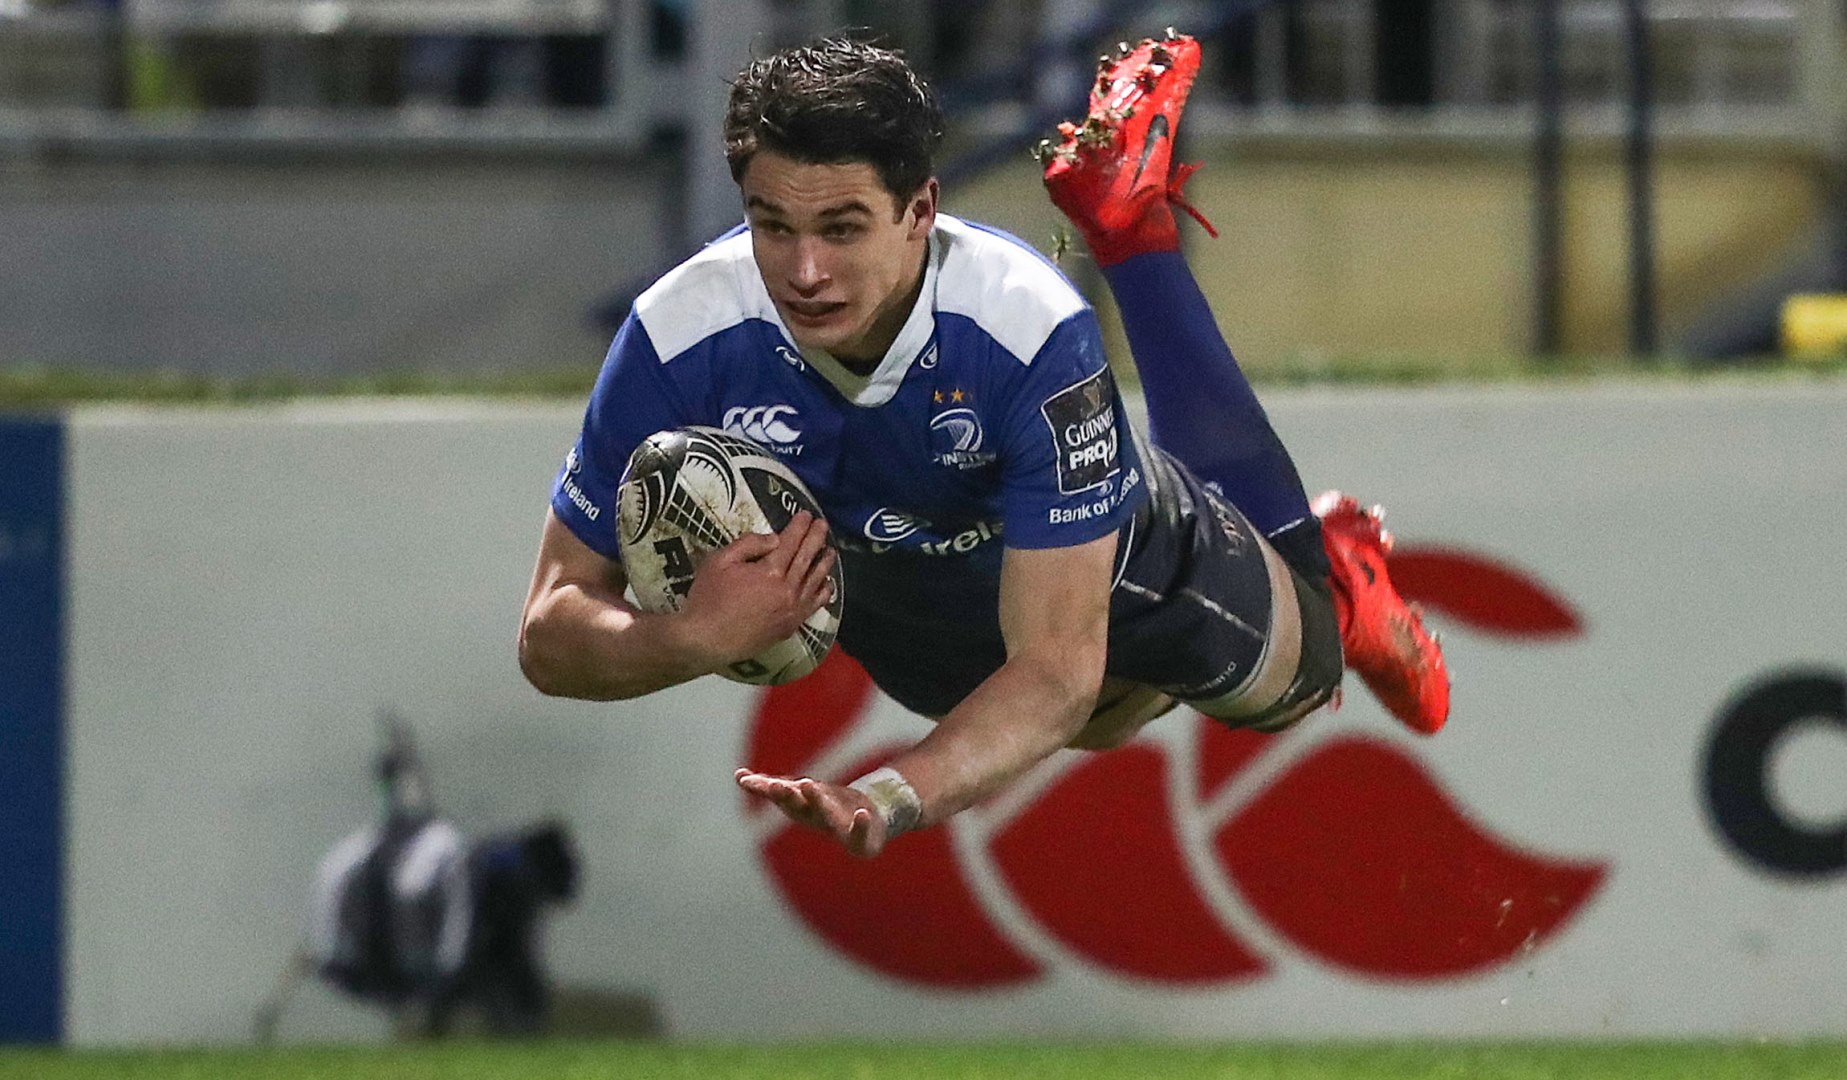 LionsWatch: Carbery continues to flourish at full-back